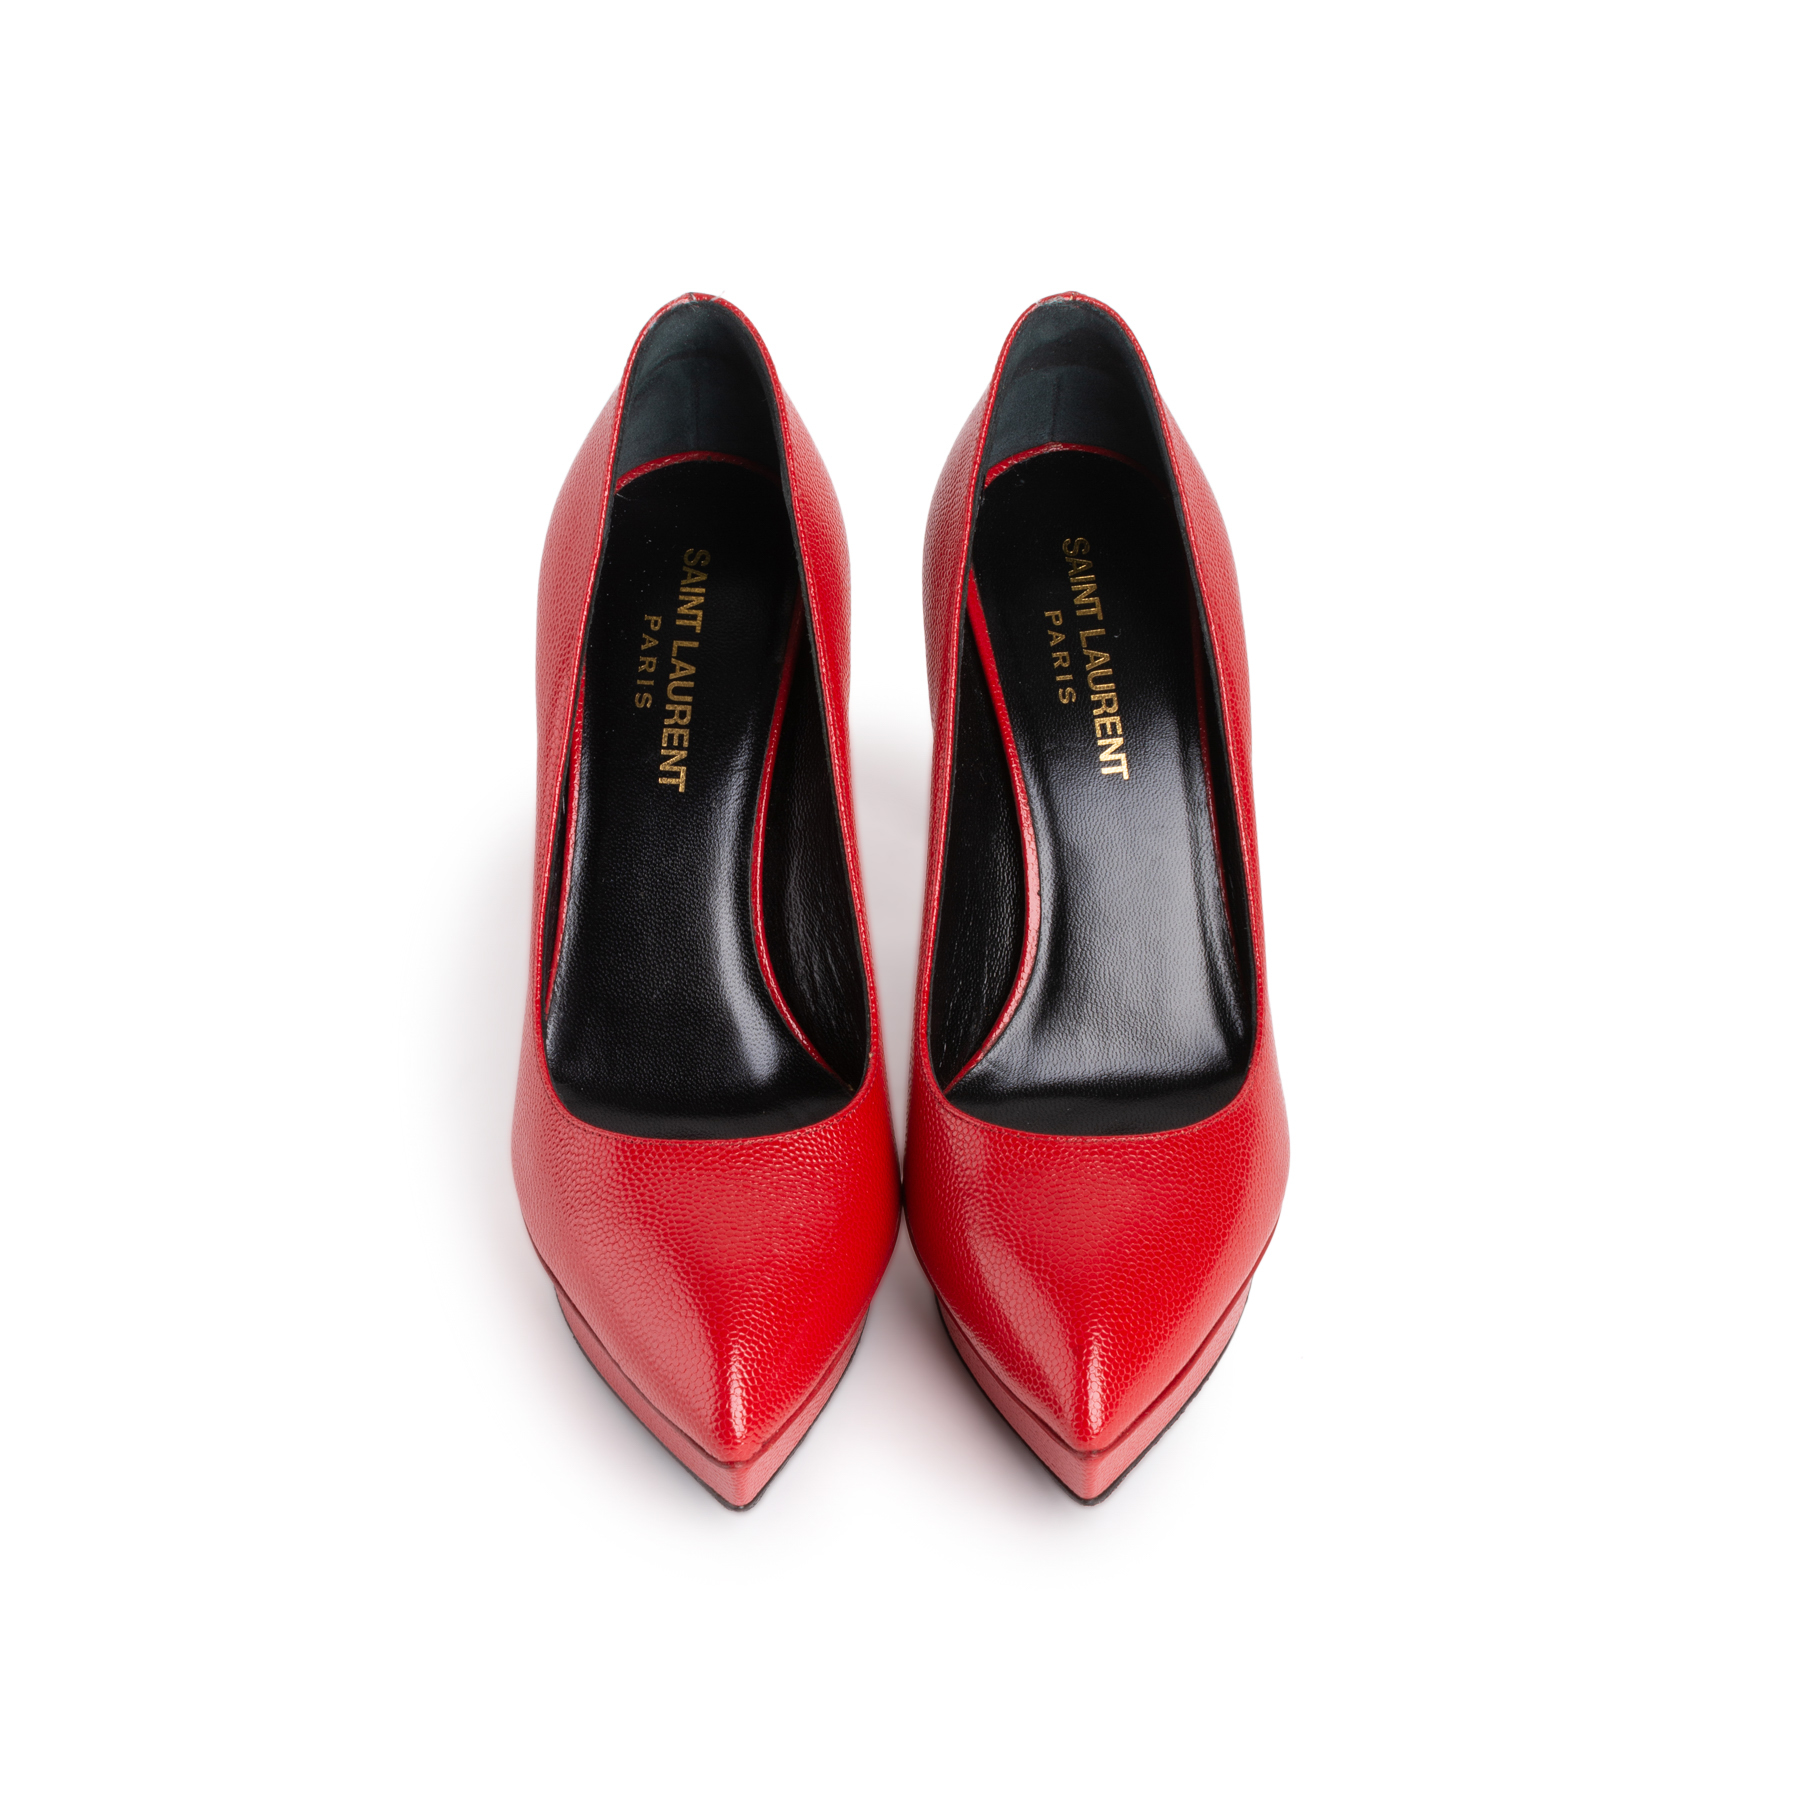 Authentic Second Hand Saint Laurent Janis Pointed Toe Platform Pumps Pss 108 00038 The Fifth Collection